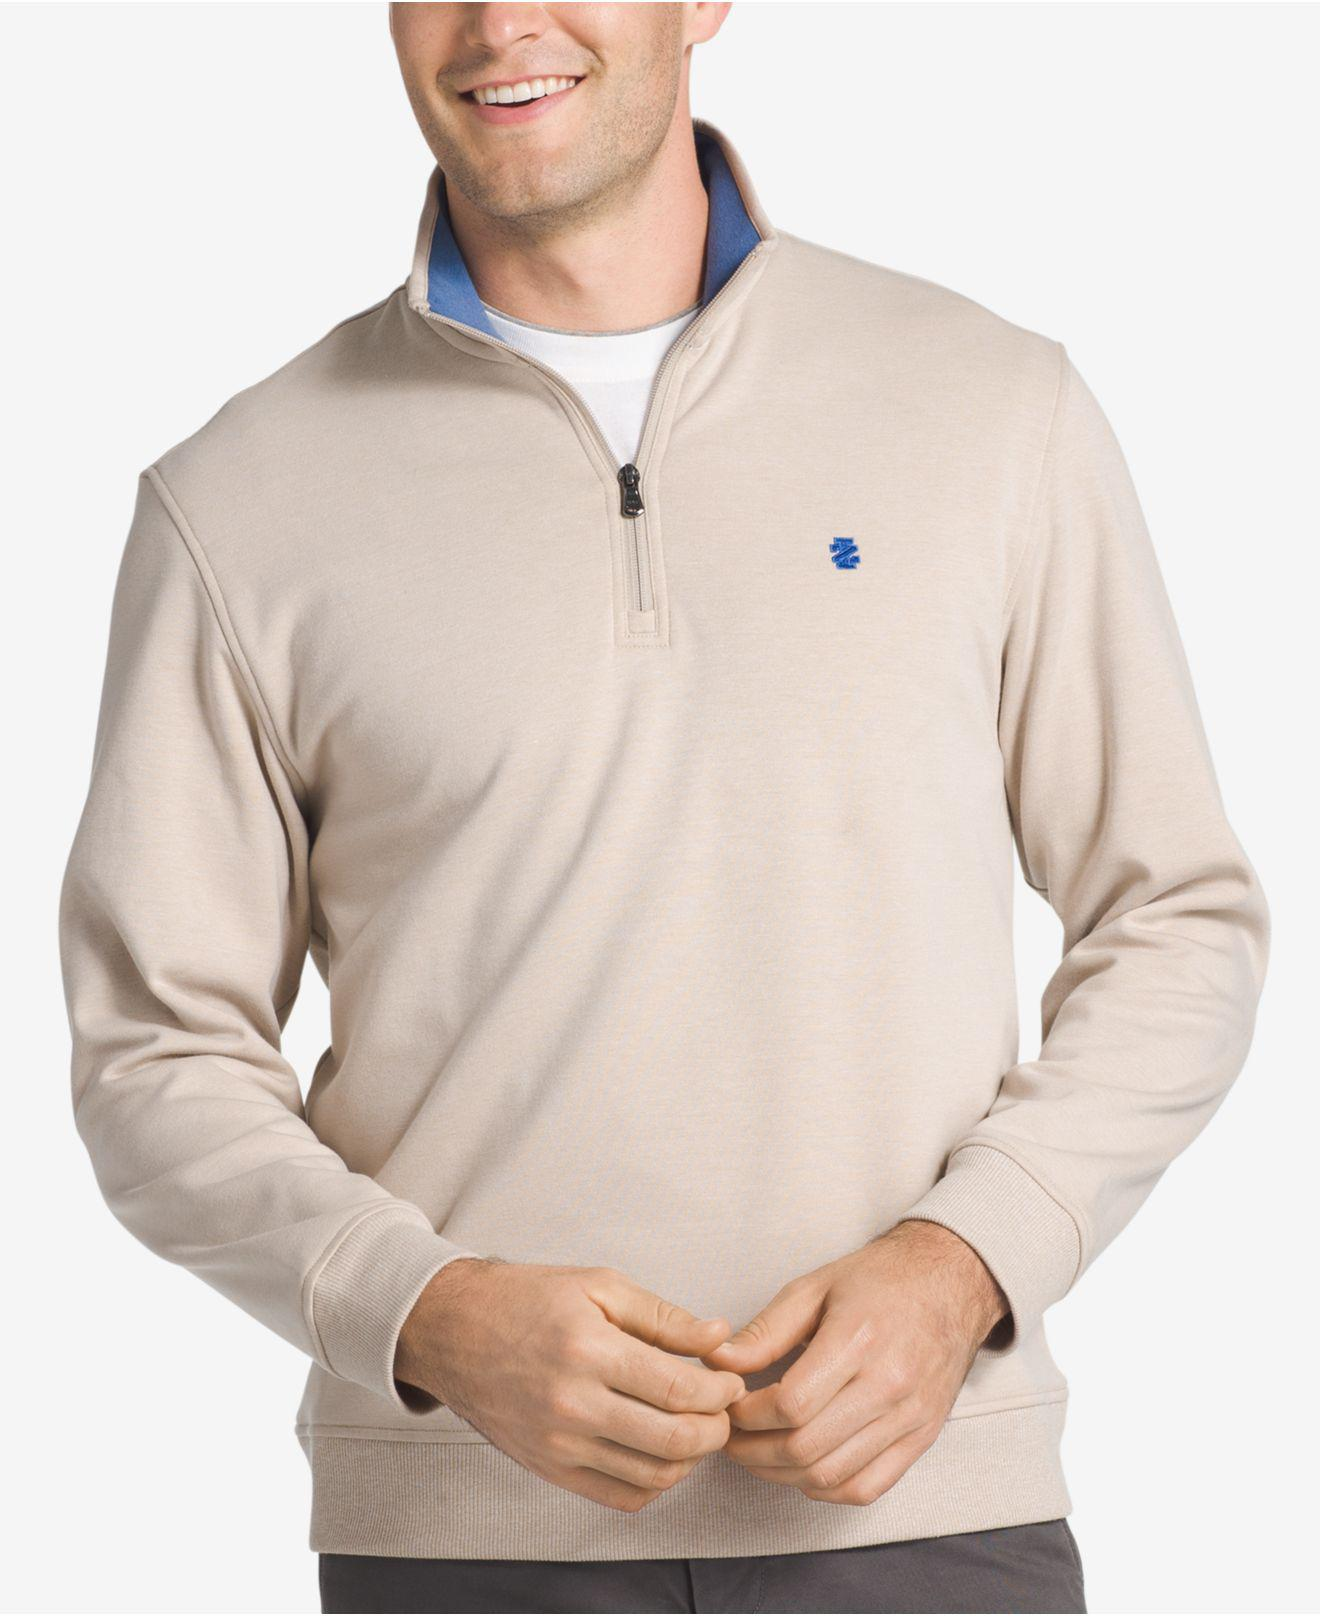 Quarter Zip Advantage Men's Izod Sweater Lyst Natural In Stretch Hq6In1